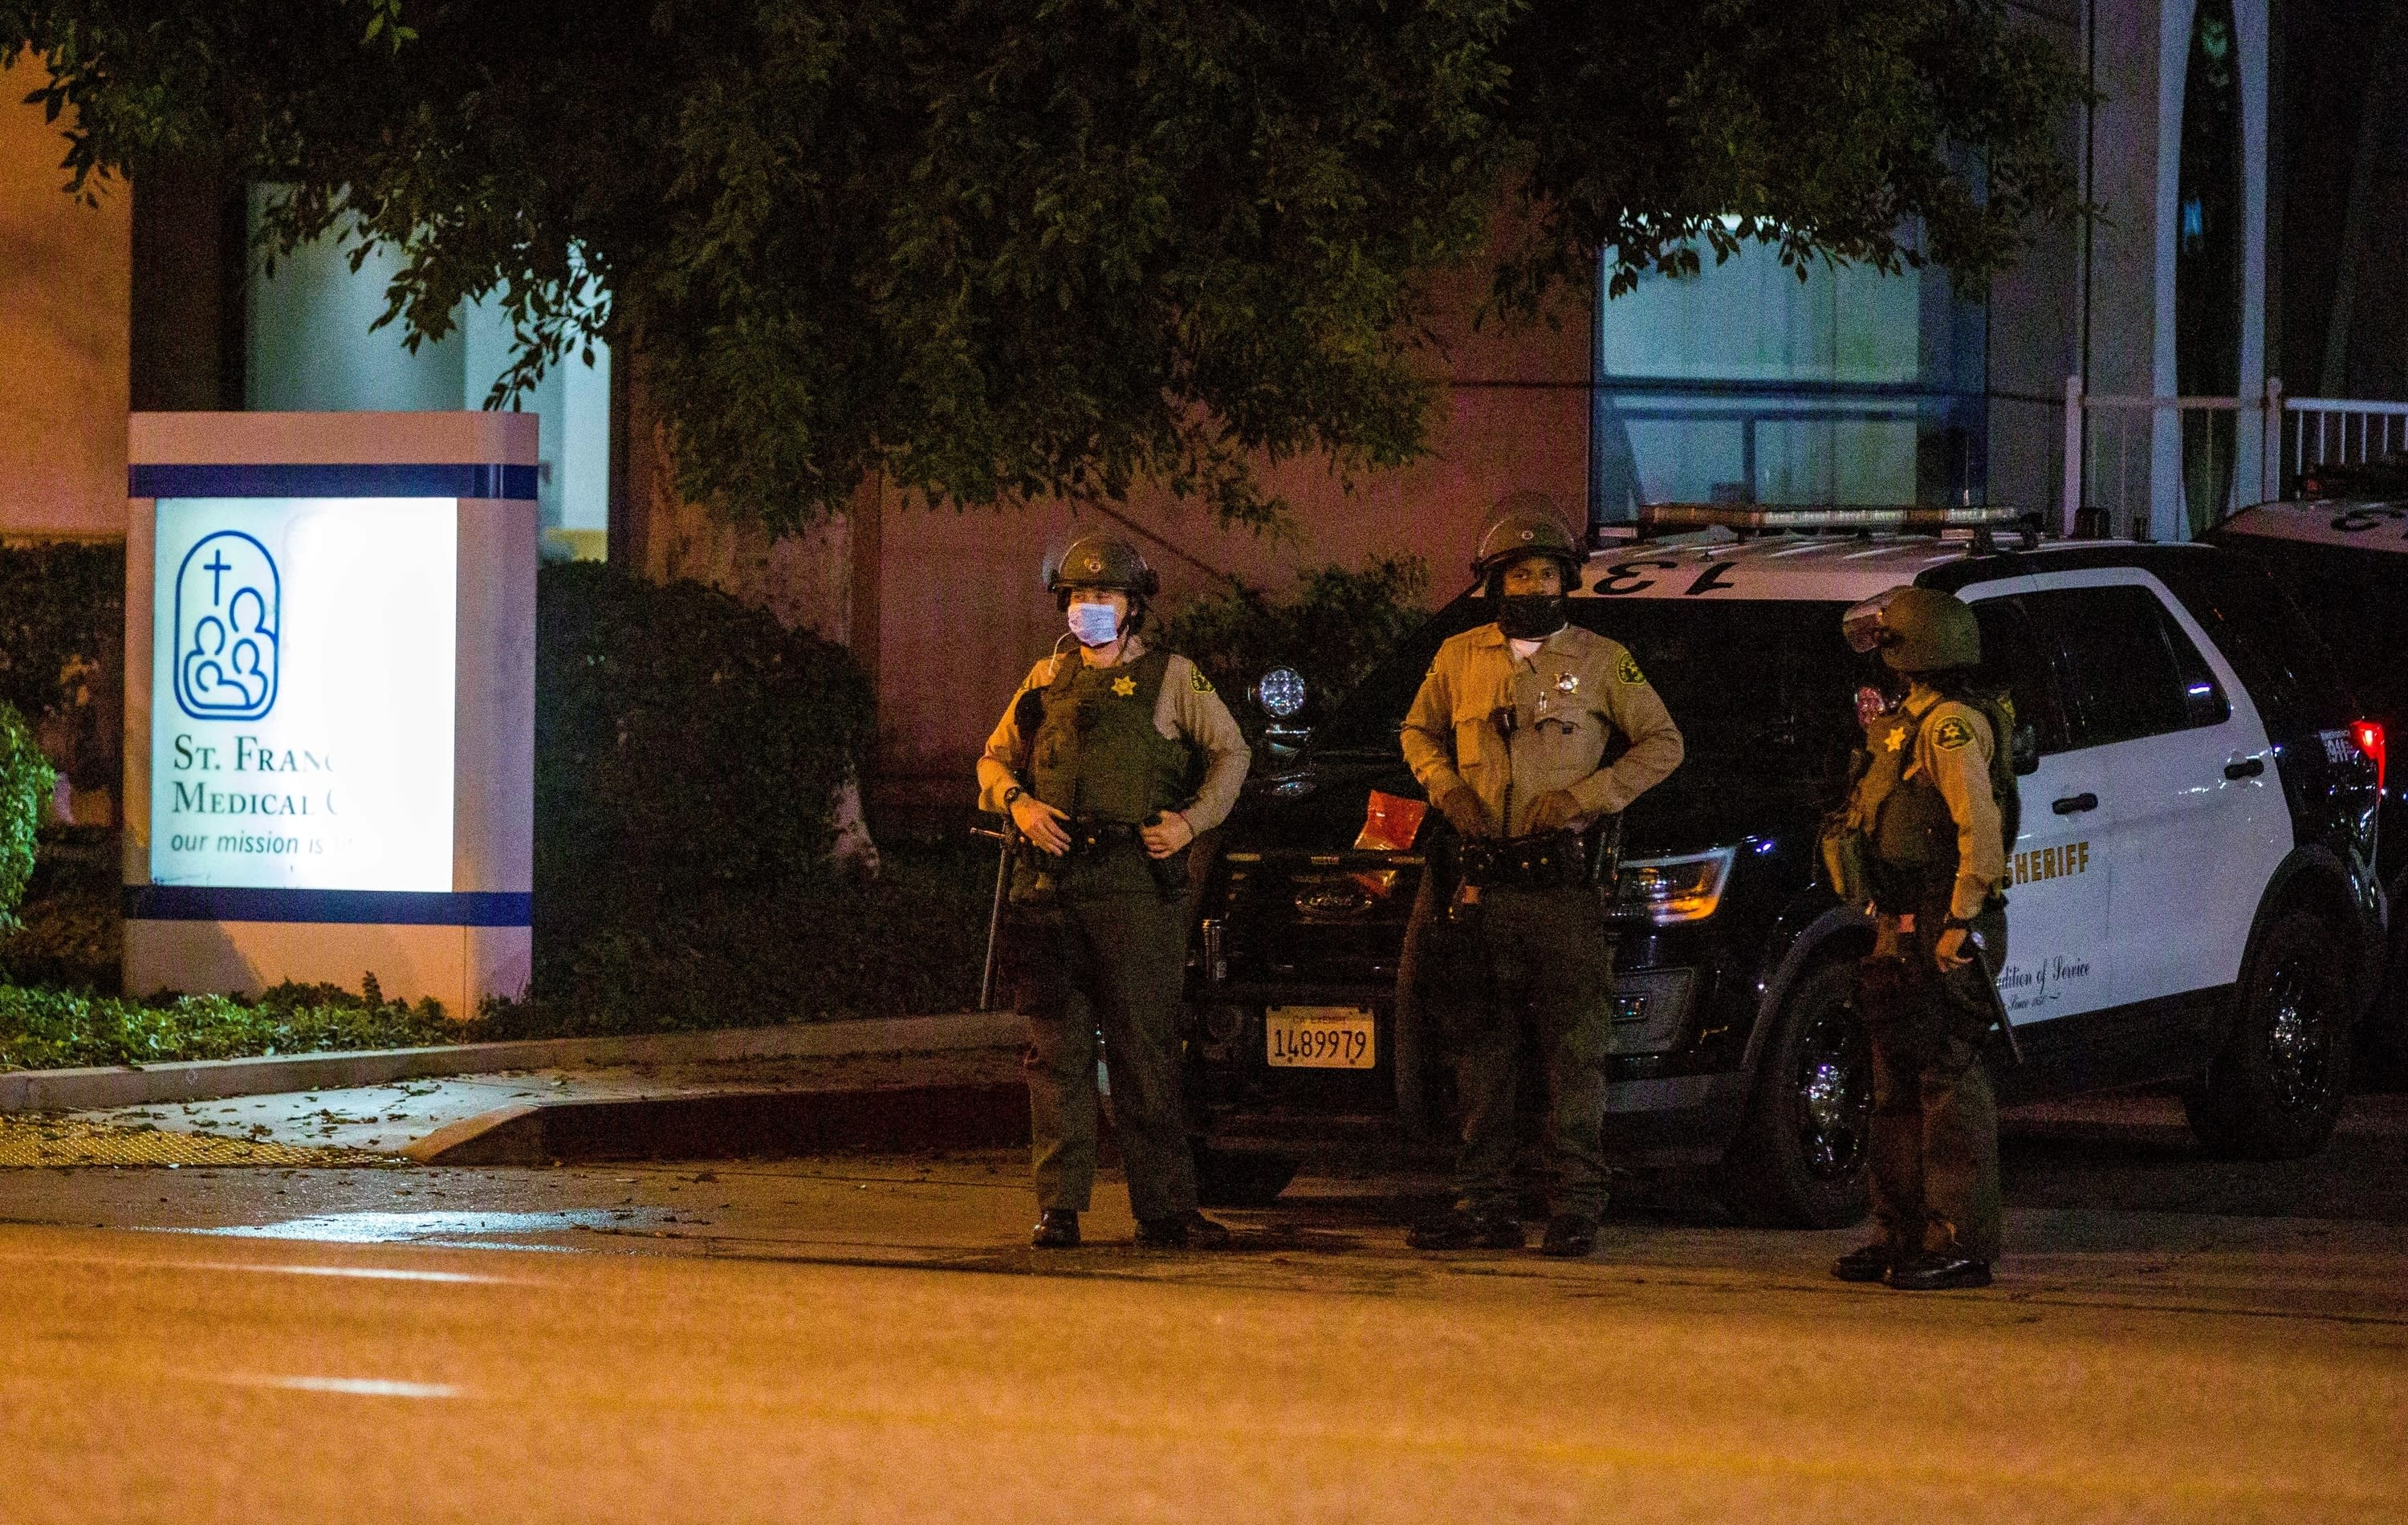 Los Angeles County Sheriff's deputies guard the entrance to St. Francis Medical Center early Monday, Sept. 13, 2020, after two deputies were shot late Saturday, Sept. 12 while sitting inside their patrol vehicle guarding a Metro station in Compton, Calif. (AP Photo/Jintak Han)